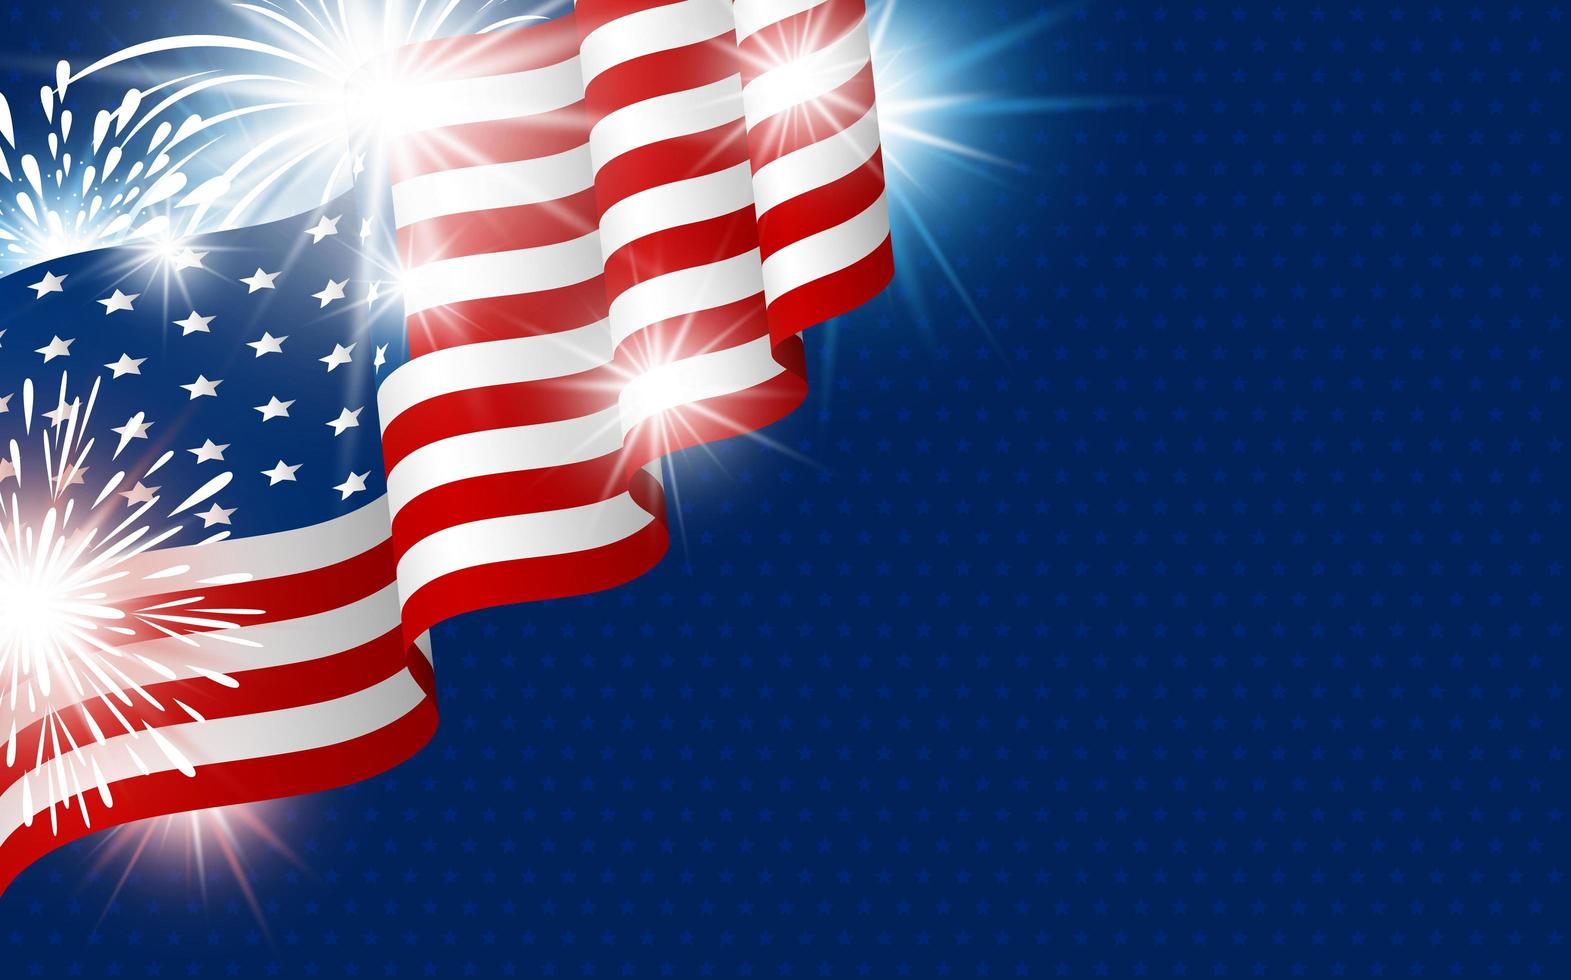 USA flag with fireworks on star pattern vector